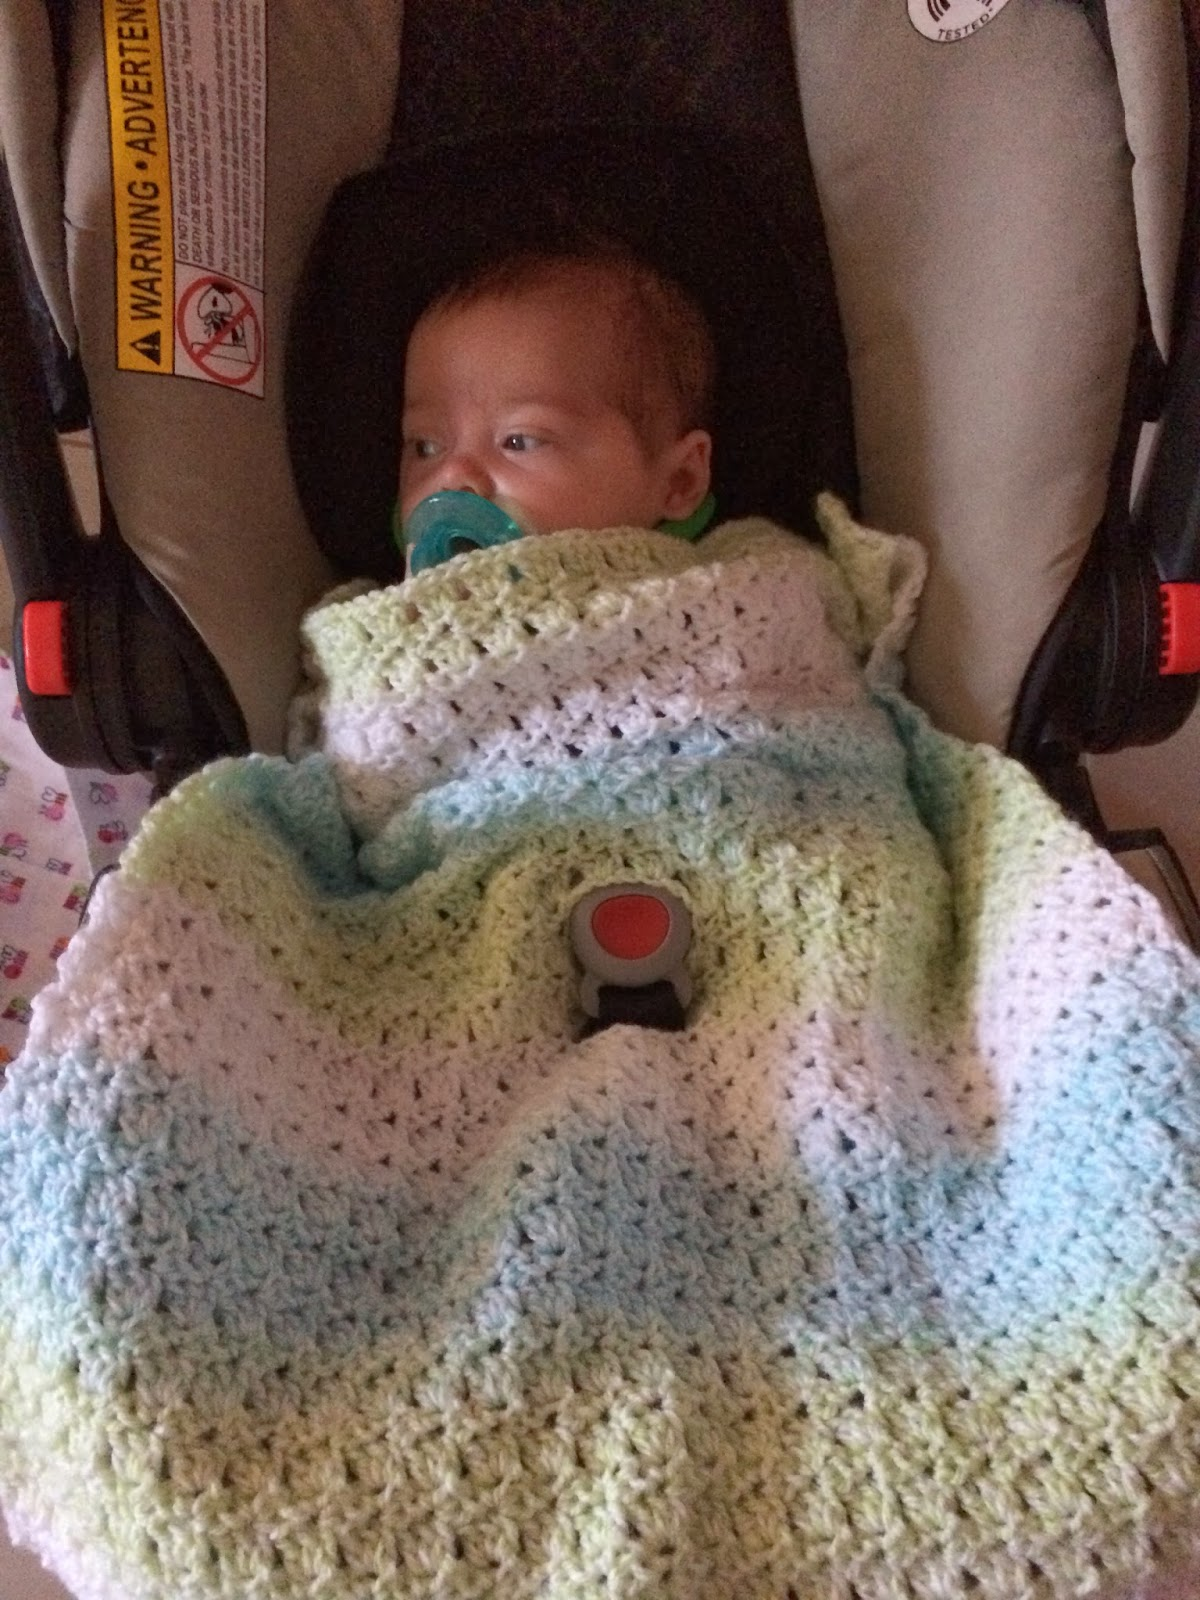 Car Seat Blanket Knitting Pattern : Not My Nanas Crochet!: Crochet Baby Car Seat Blanket in Primrose Stitch ...